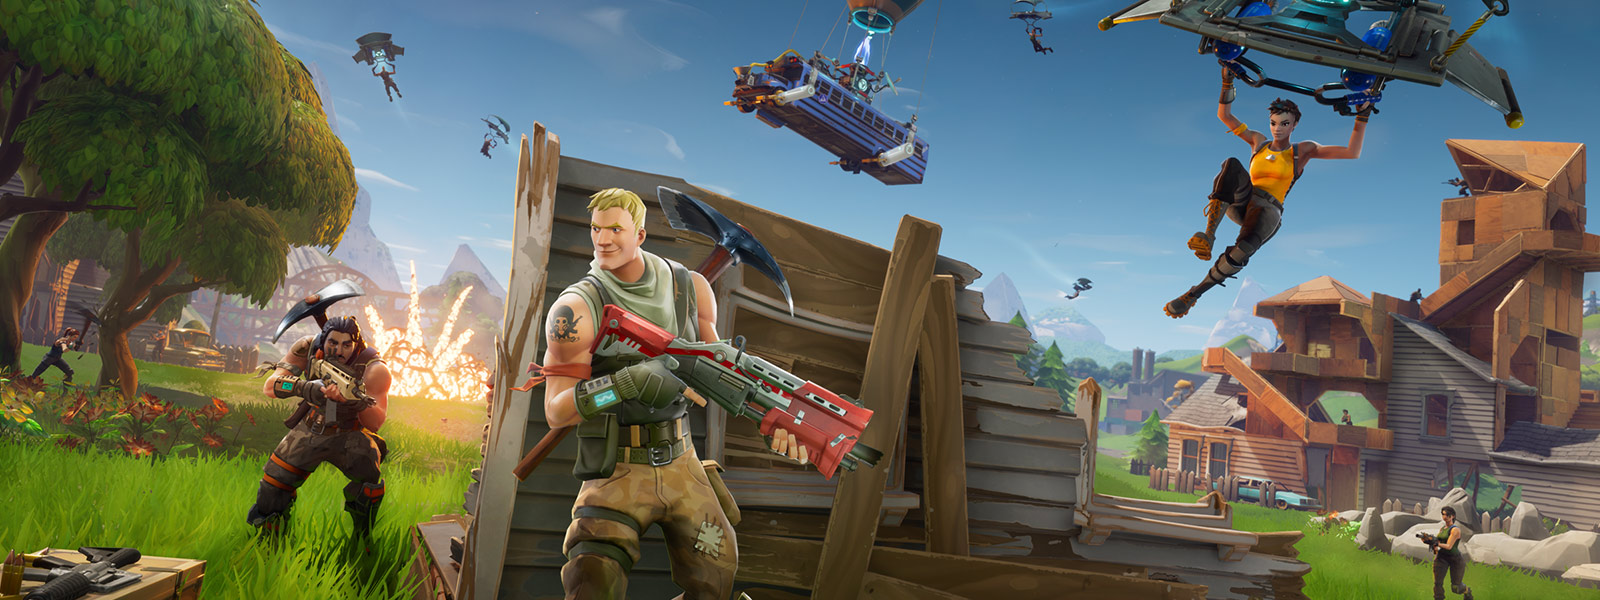 Game character hiding behind a partially destroyed wall as other players land after jumping from the battle bus